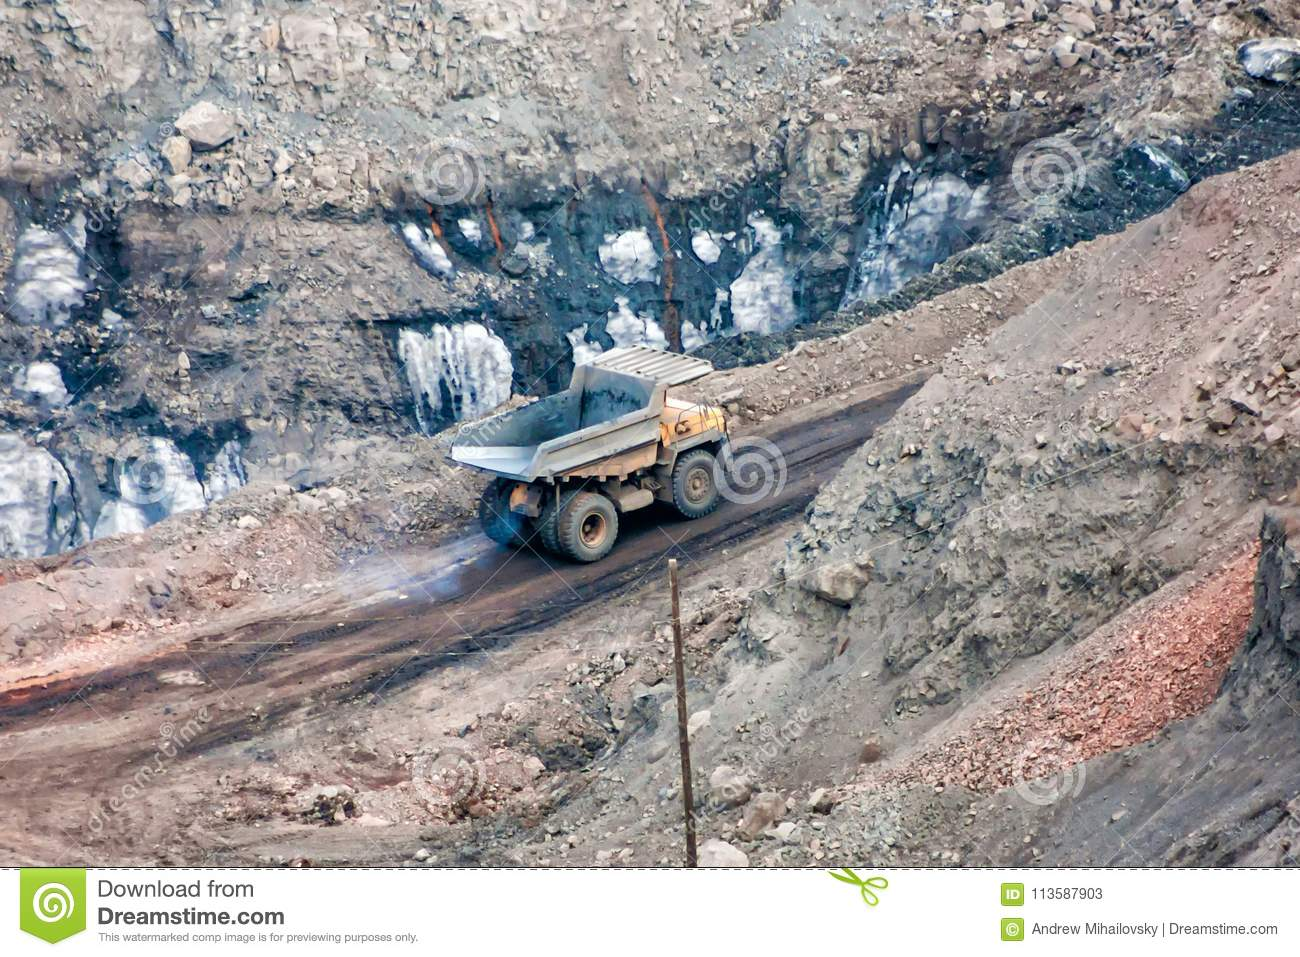 The quarry dump truck in the mine